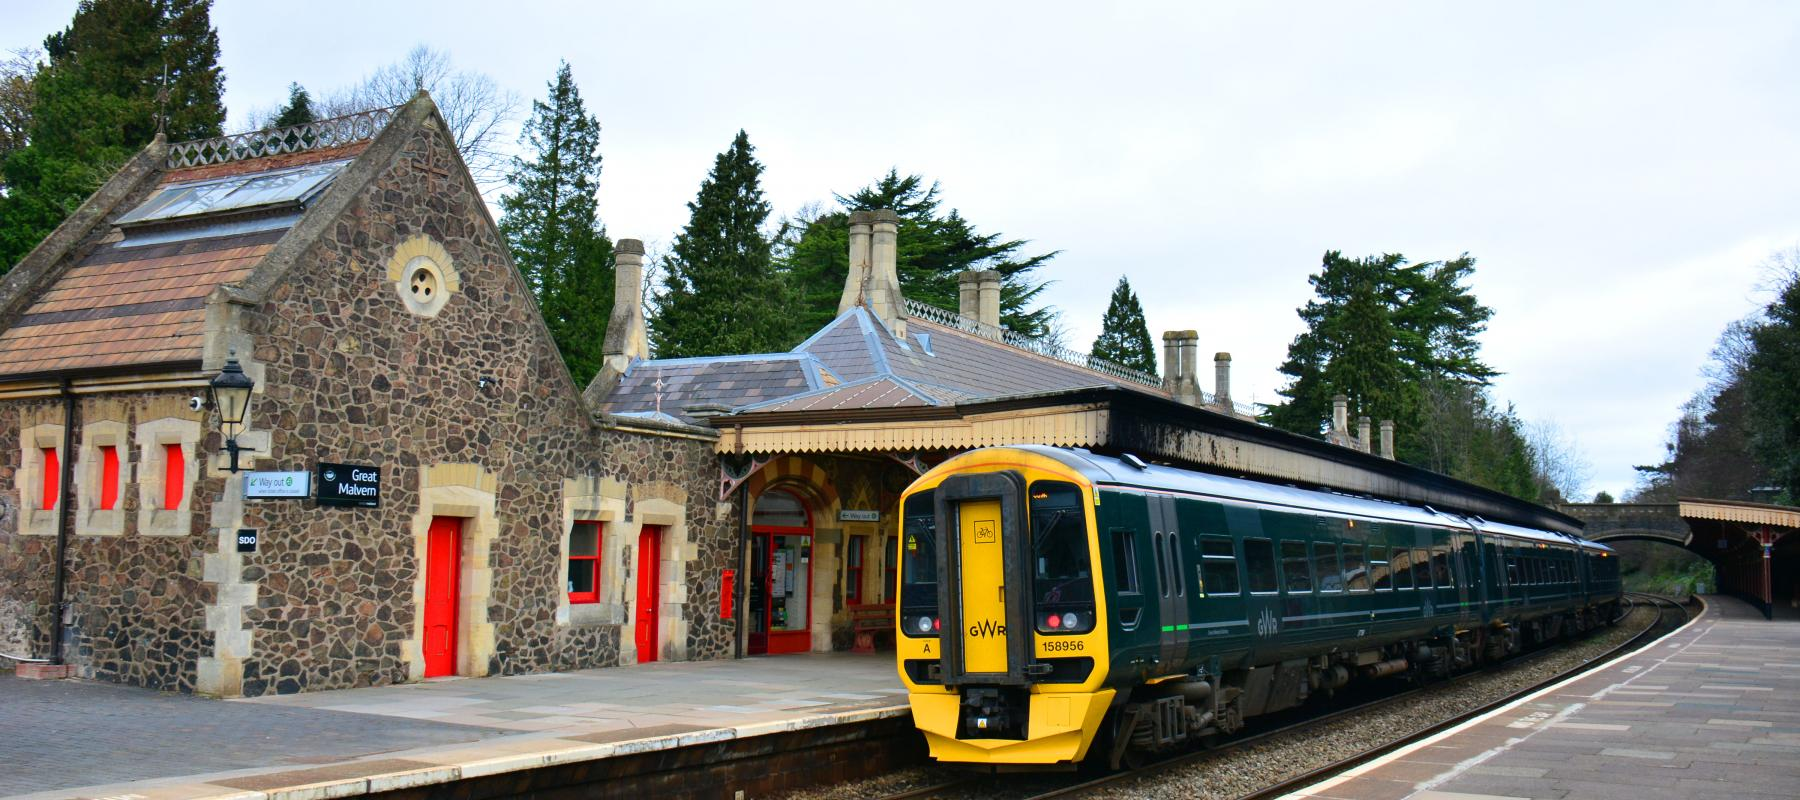 Train stood at Great Malvern Railway Station